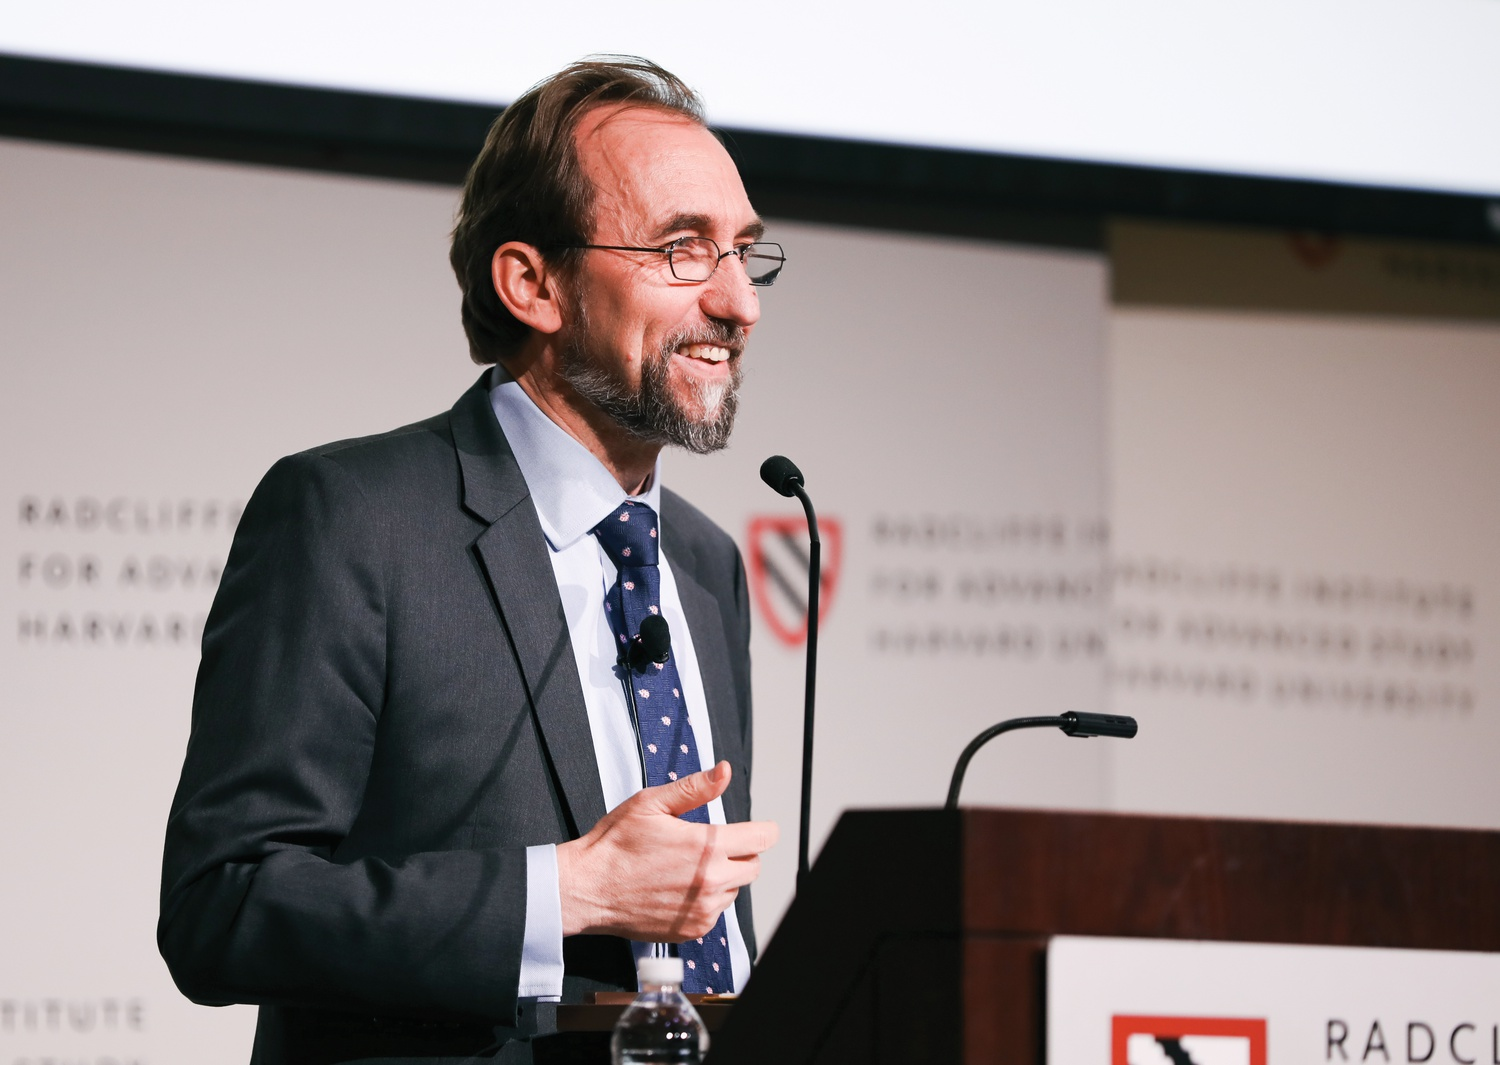 Zeid Ra'ad Al Hussein, a career diplomat and former United Nations High Commissioner for Human Rights, speaks about the current geopolitical environment at the Knafel Center Thursday.